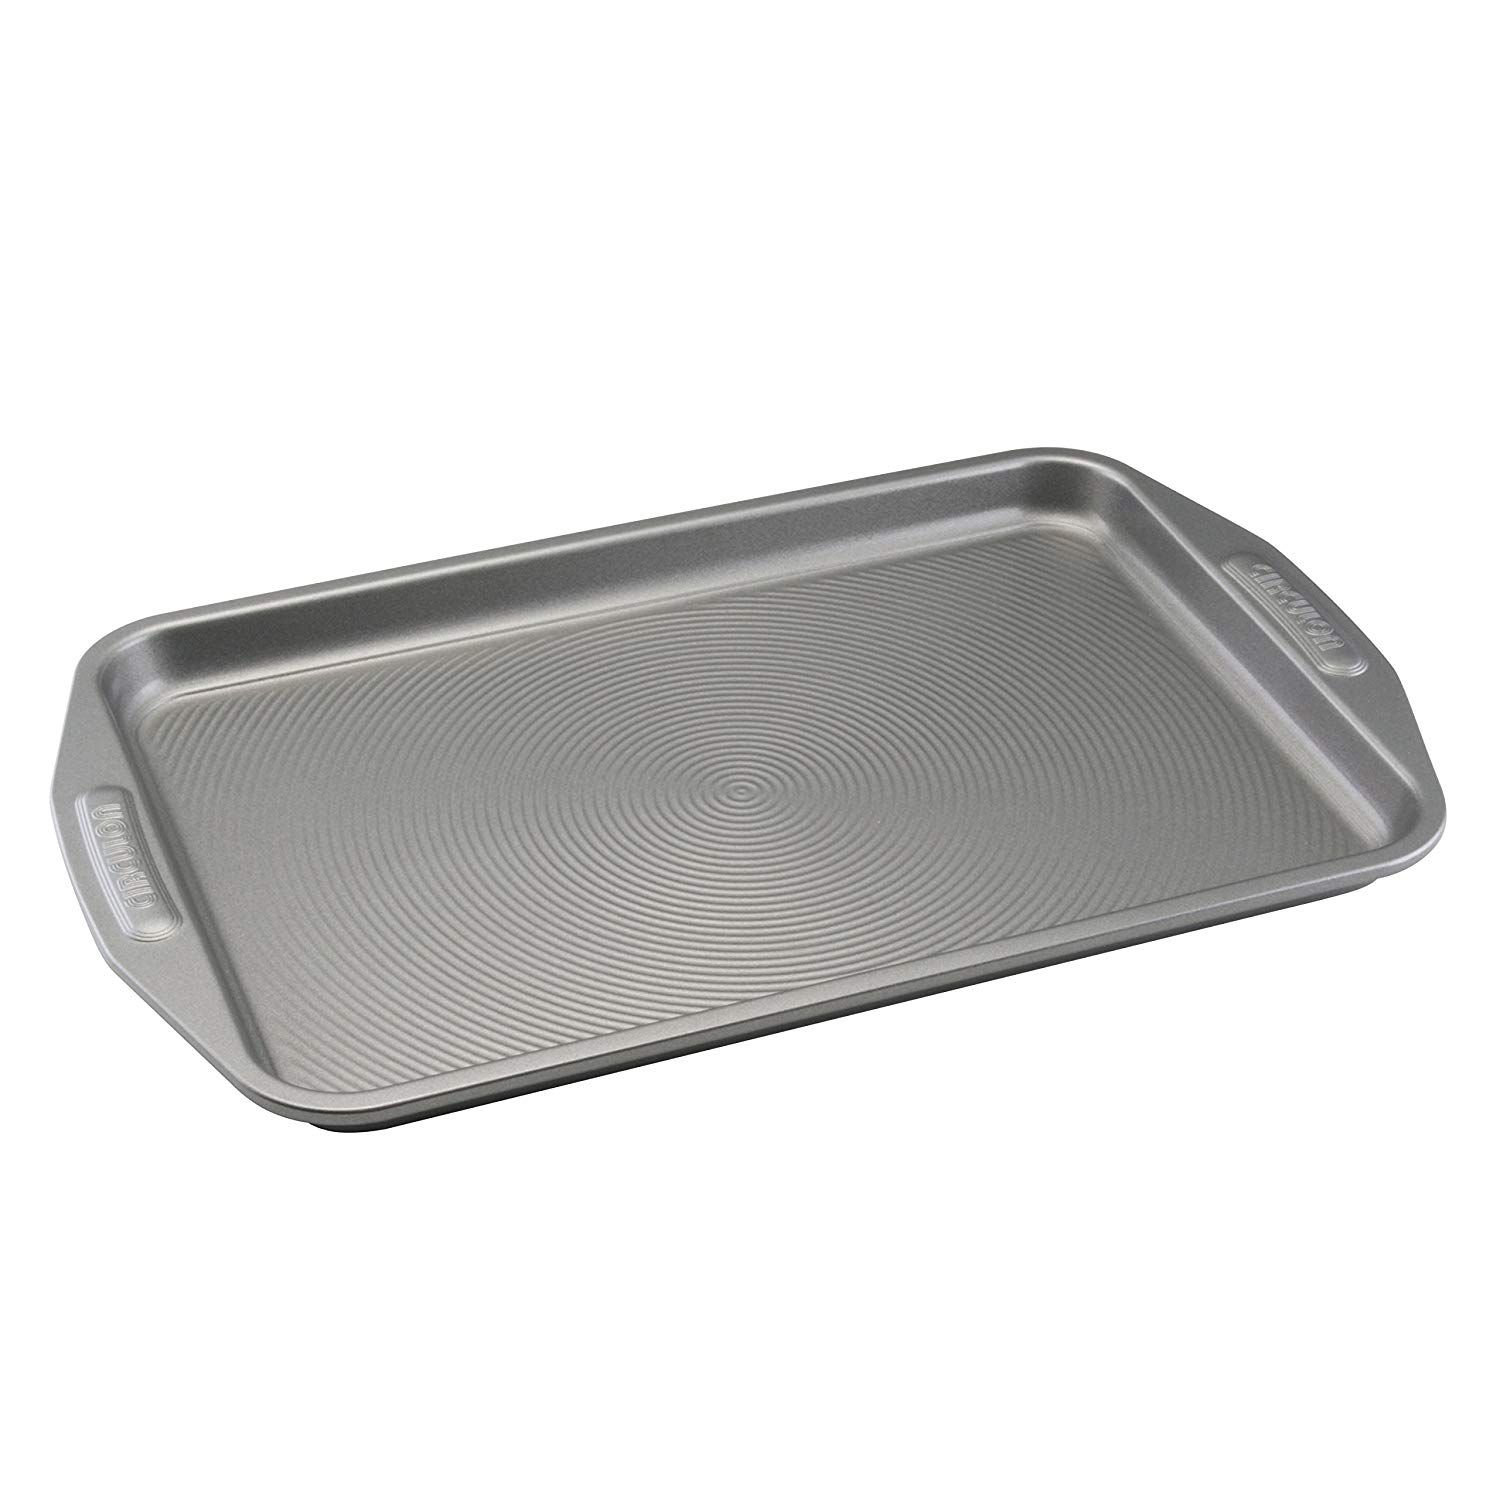 Circulon Nonstick Bakeware 10 Inch X 15 Inch Cookie Pan Gray Click Image For More Details This Is An Affiliate L Nonstick Bakeware Bakeware Set Circulon